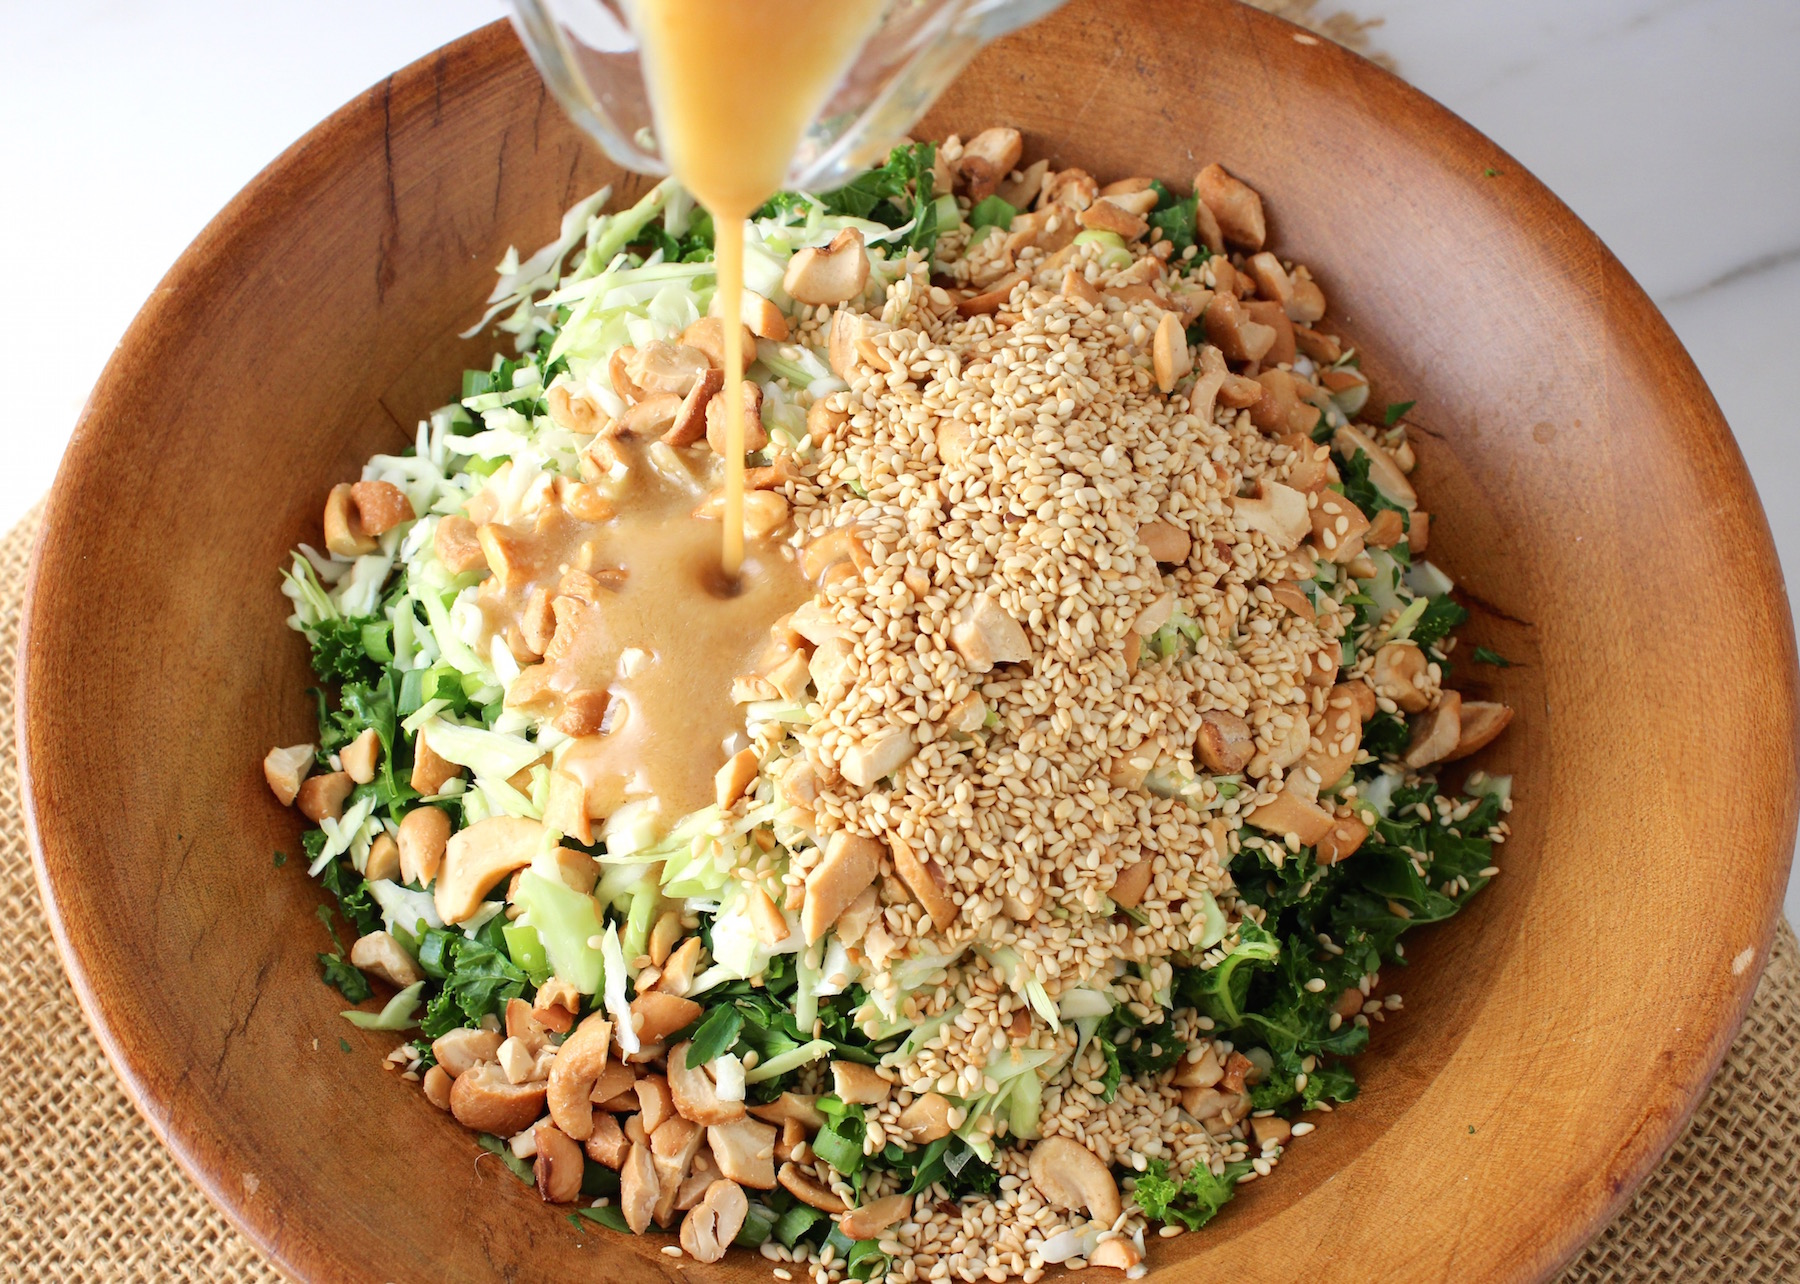 kale cashew salad with miso